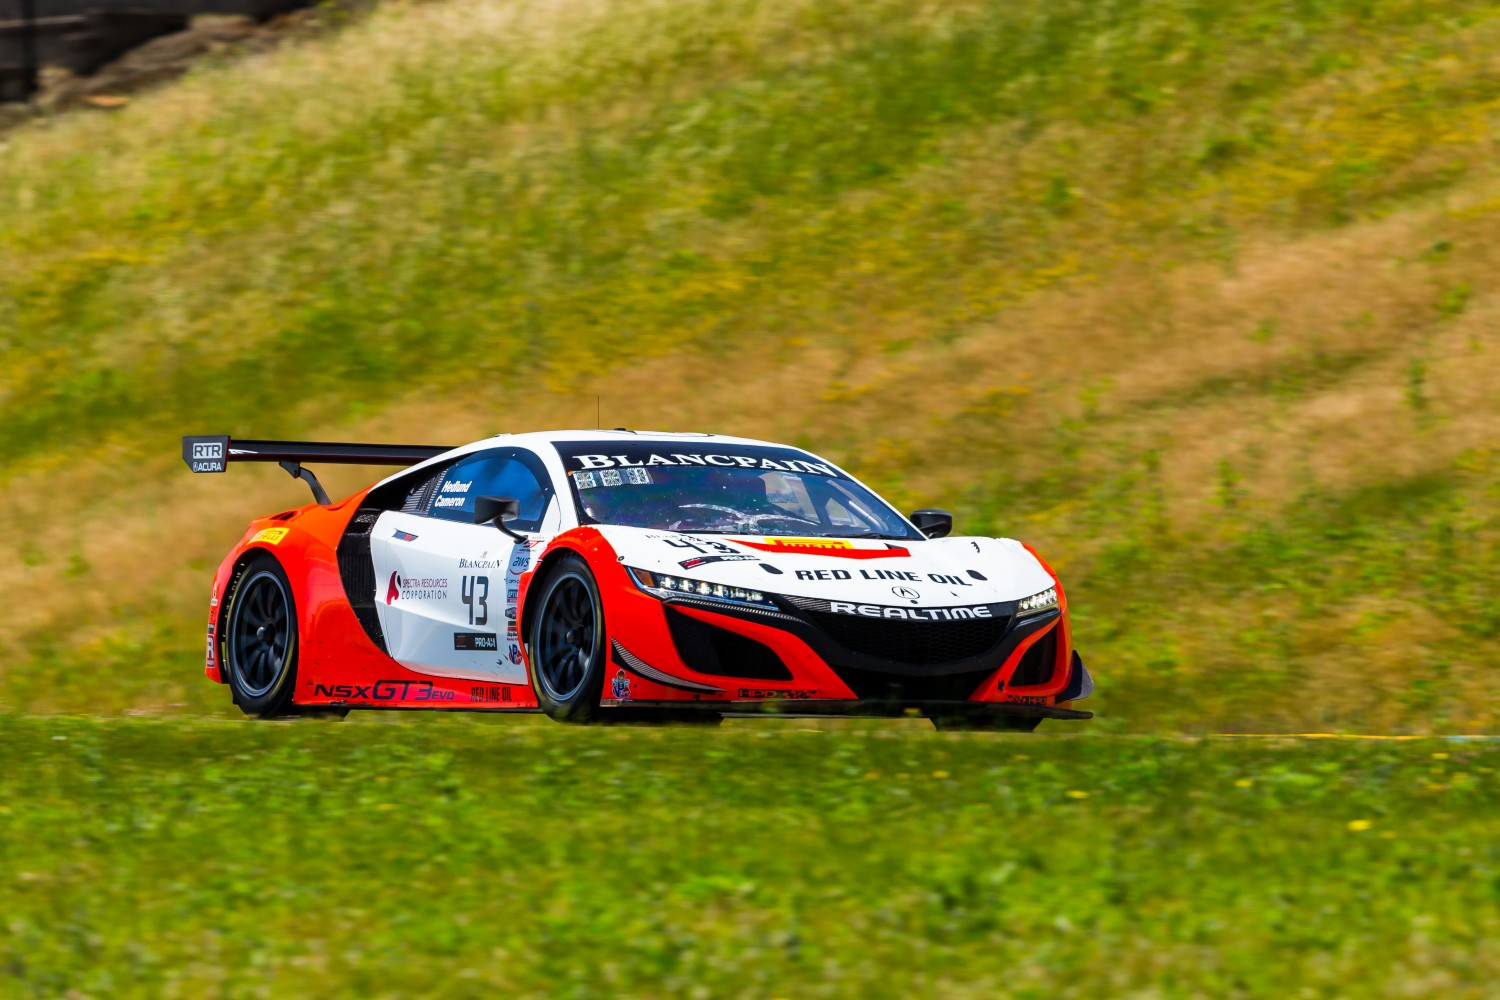 #43 Acura NSX of Mike Headlund and Dane Cameron   SRO at Sonoma Raceway, Sonoma CA | Fabian Lagunas/SRO